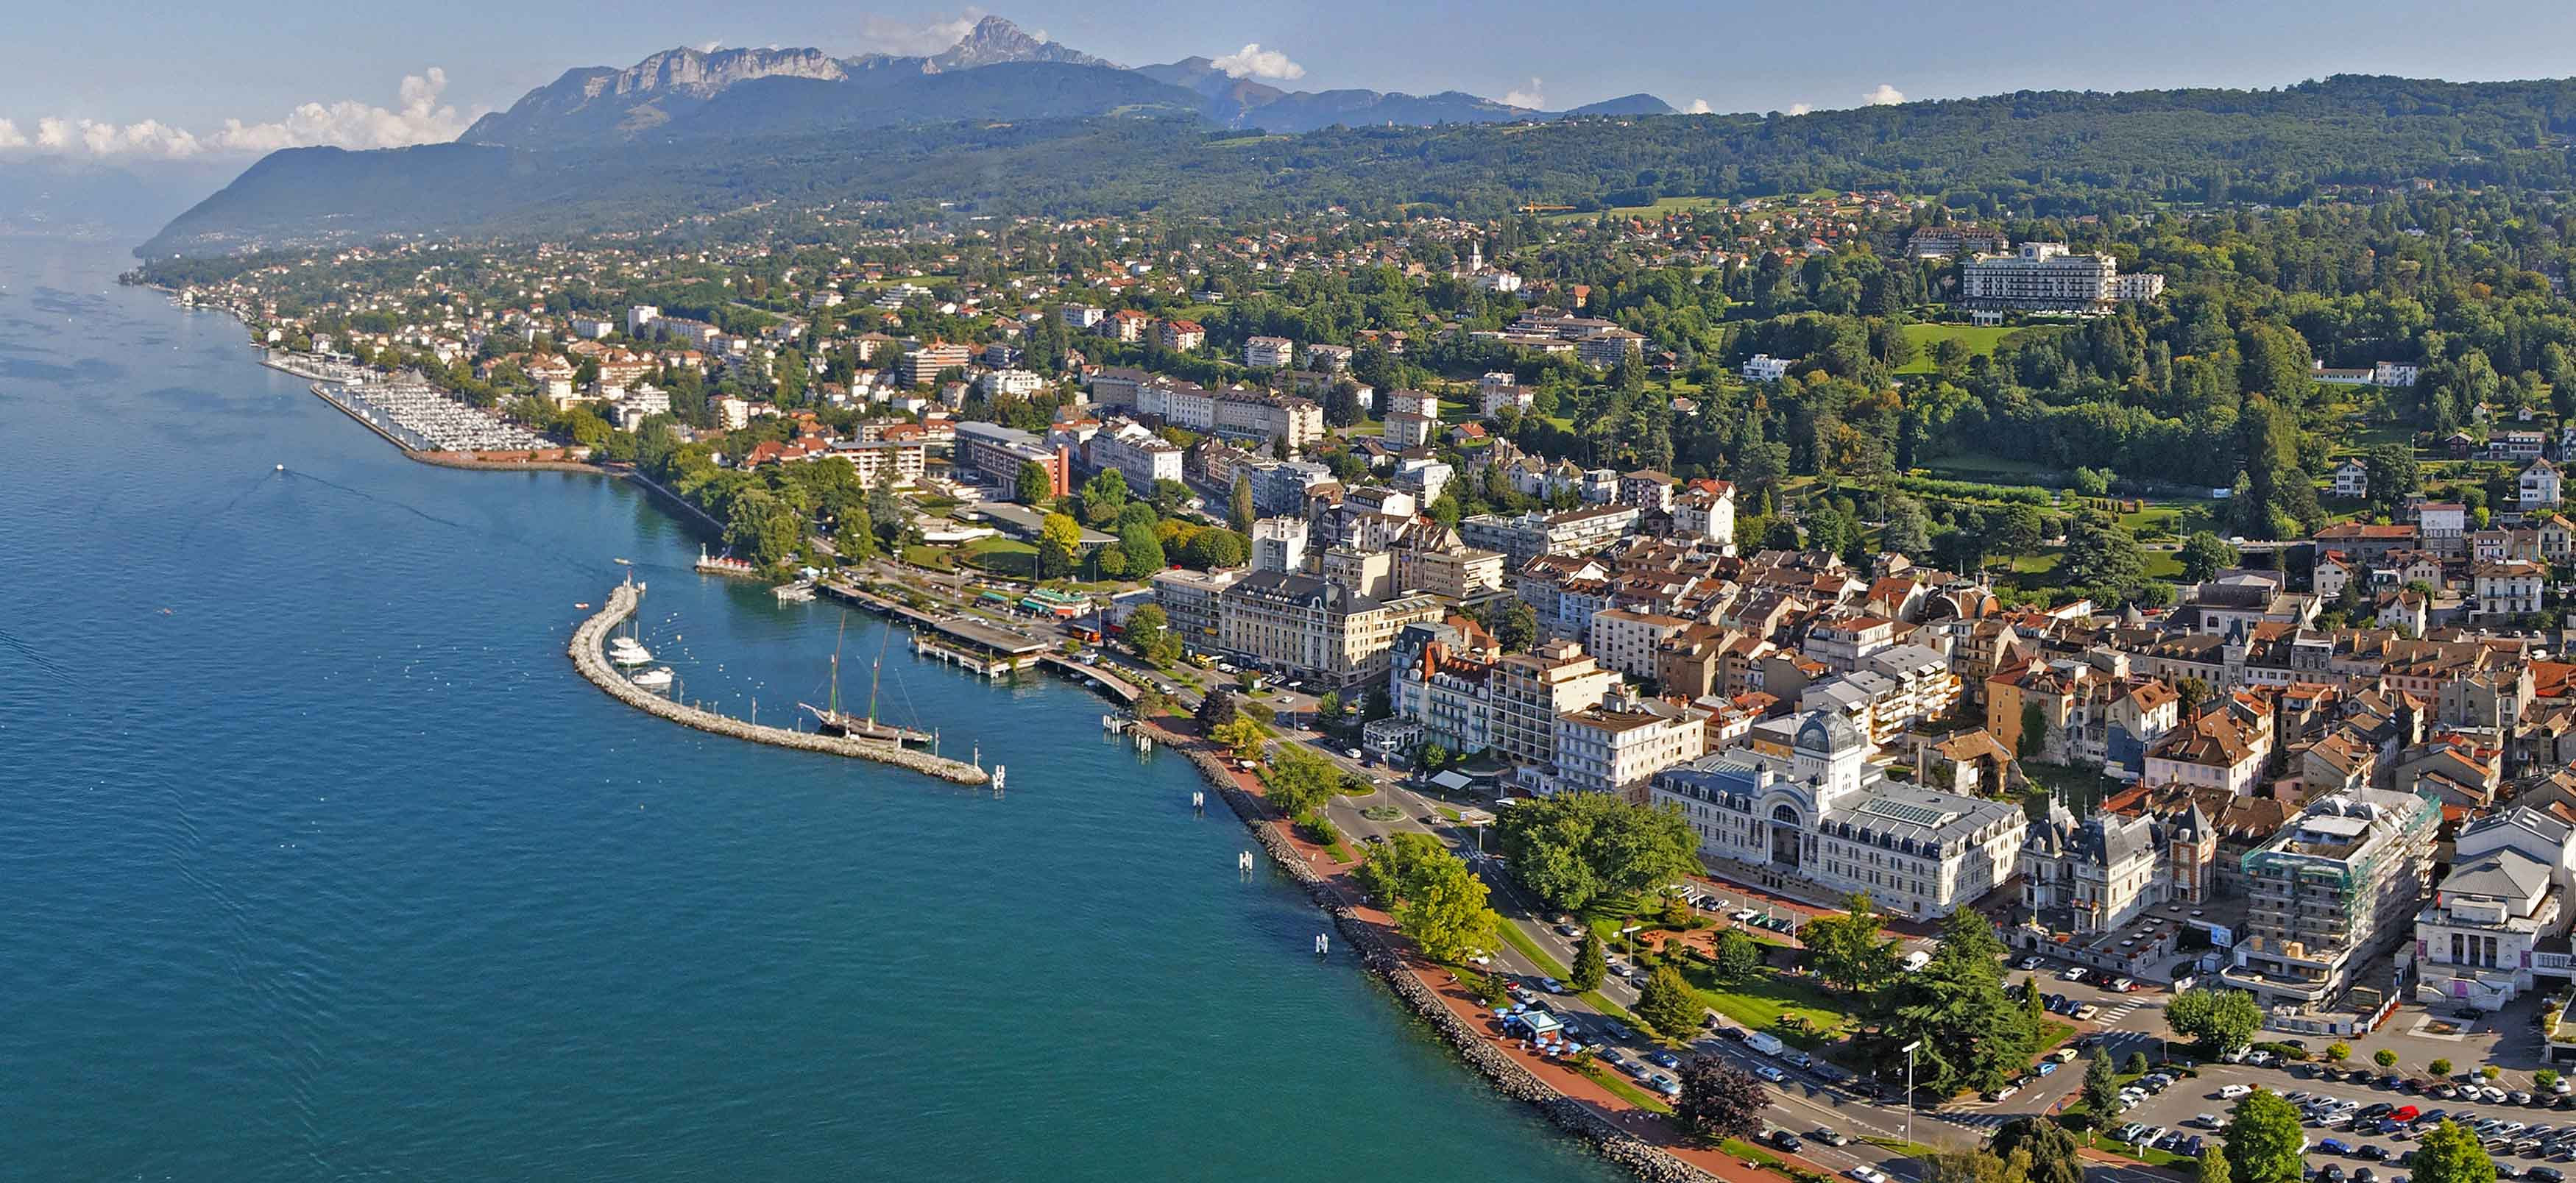 Destination Evian